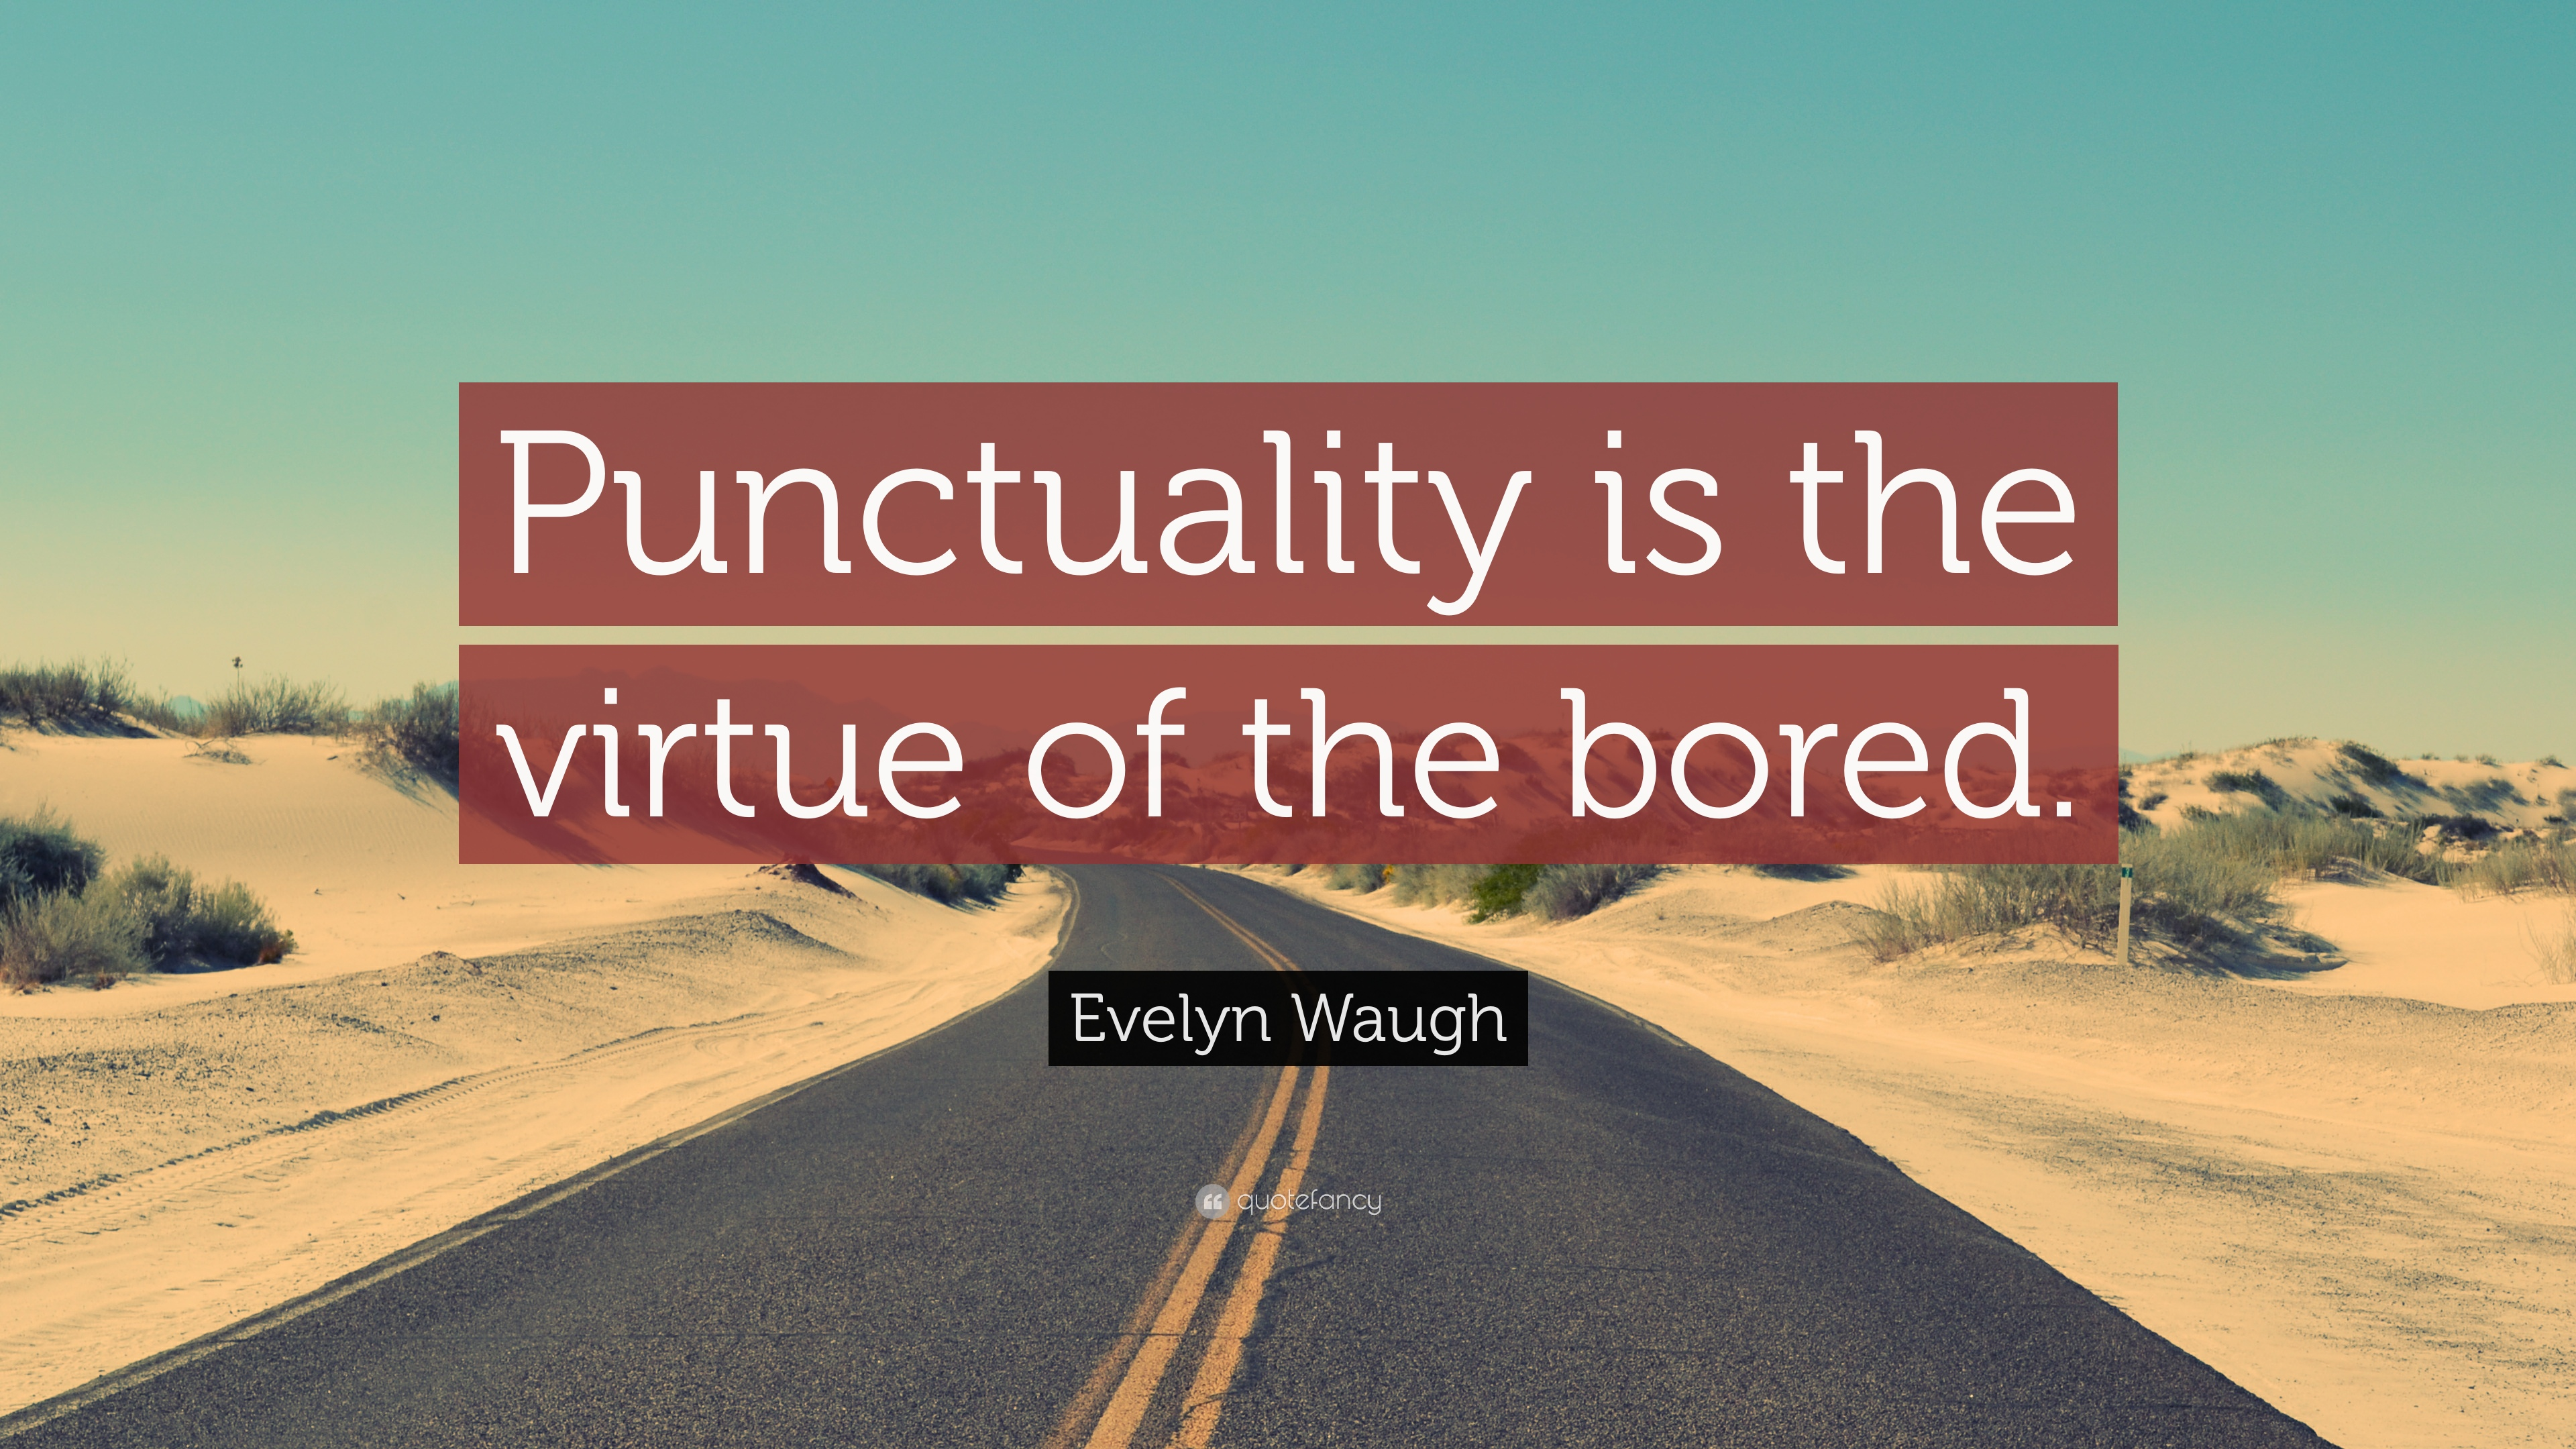 essay on punctuality is the virtue of the bored Punctuality is the politeness of kings [louis xviii]punctuality is the thief of time [ oscar wilde]punctuality is the virtue of the bored [evelyn waugh – diary] copyright © 2016 by harpercollins publishers all rights reserved additional synonyms readiness the warmth of his personality and the readiness of his wit promptness.